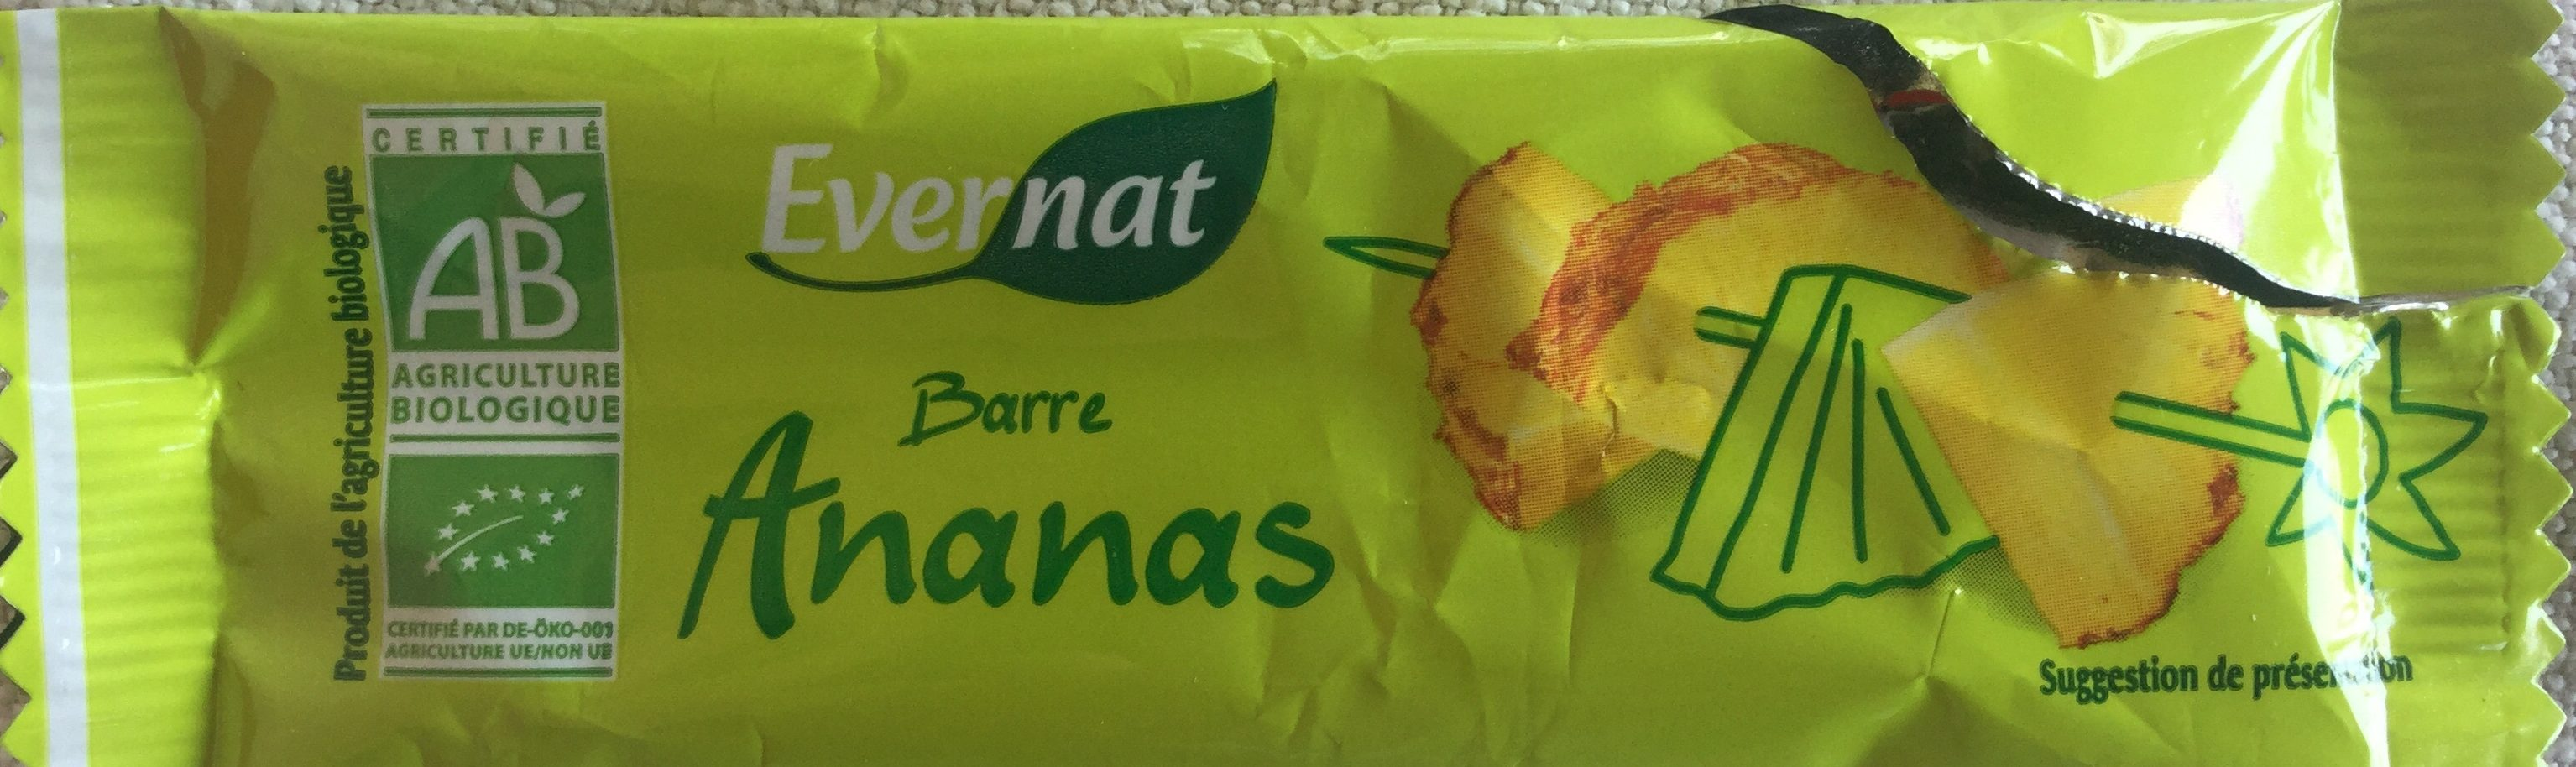 Barre Ananas - Product